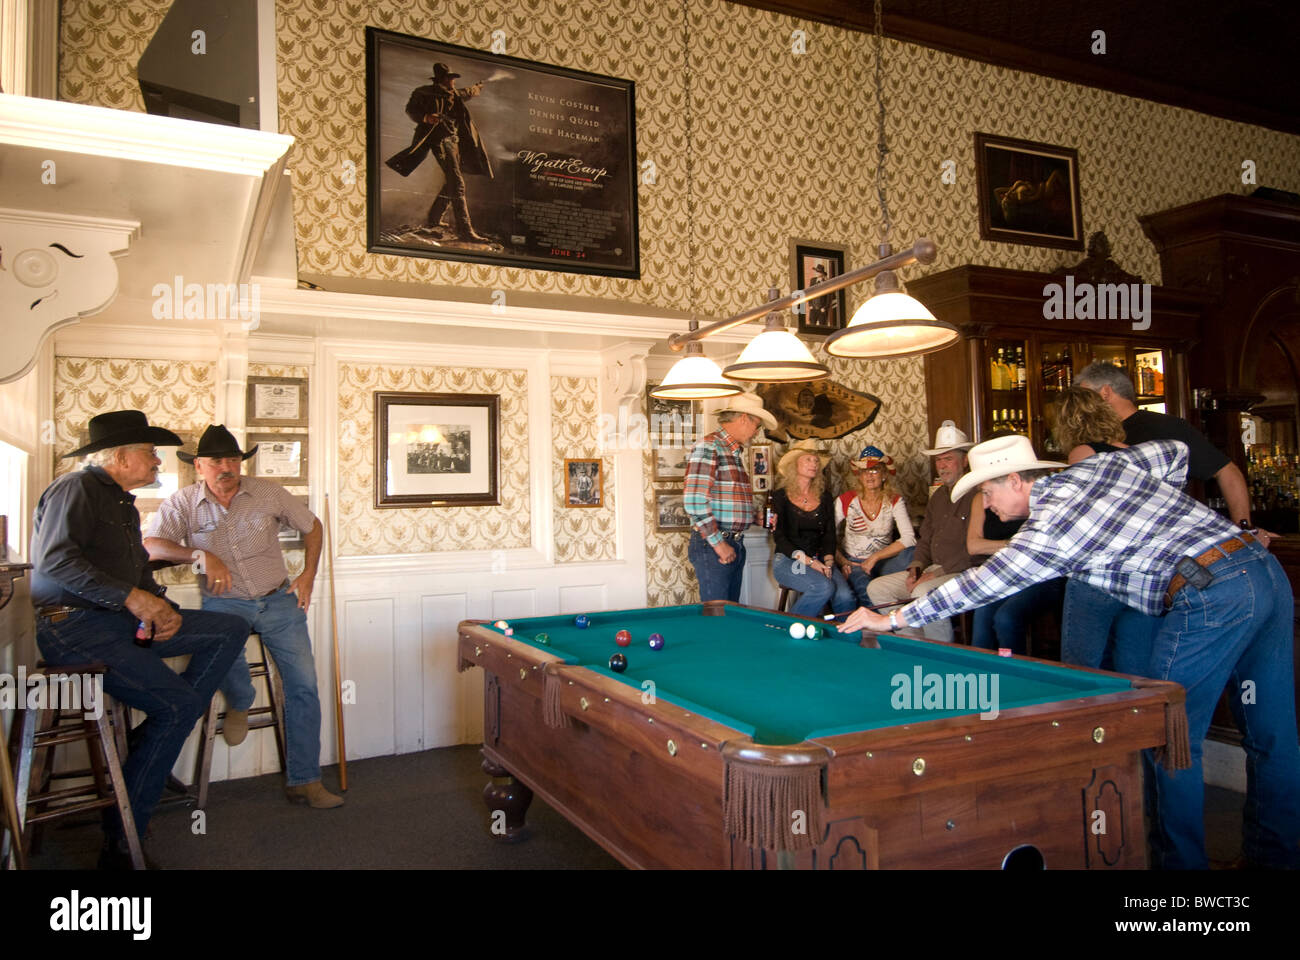 Shooting pool at the Crystal Palace Saloon in old mining town of Tombstone, a national historic landmark district - Stock Image